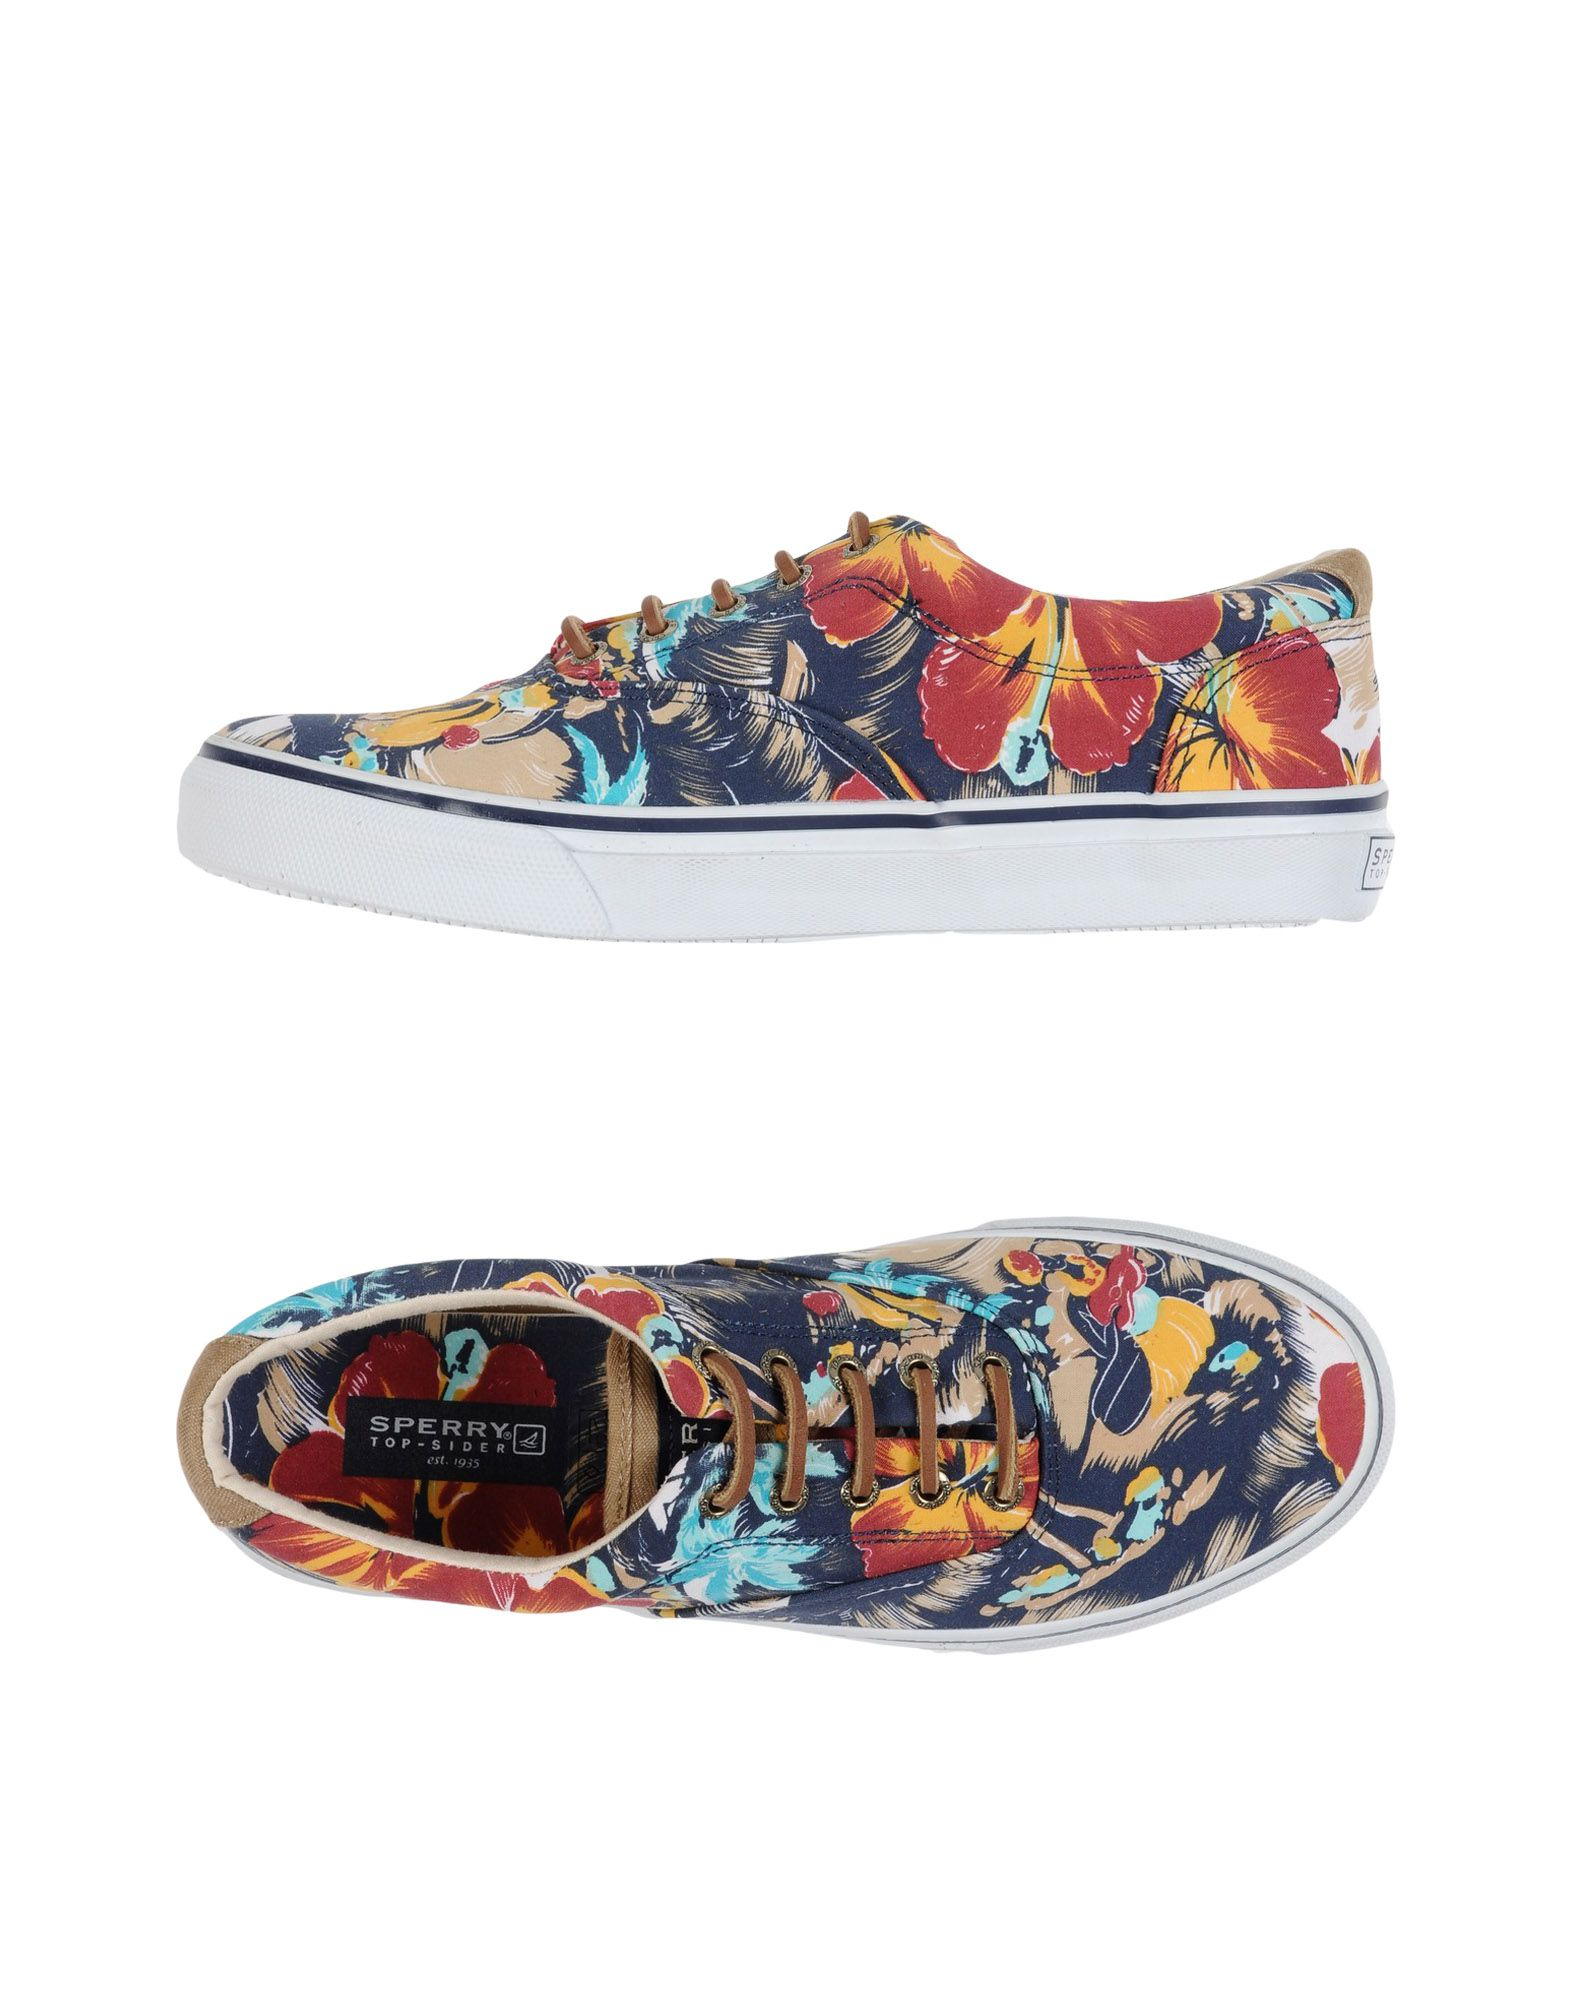 Sneakers Sperry Top-Sider Uomo - 11159726LN